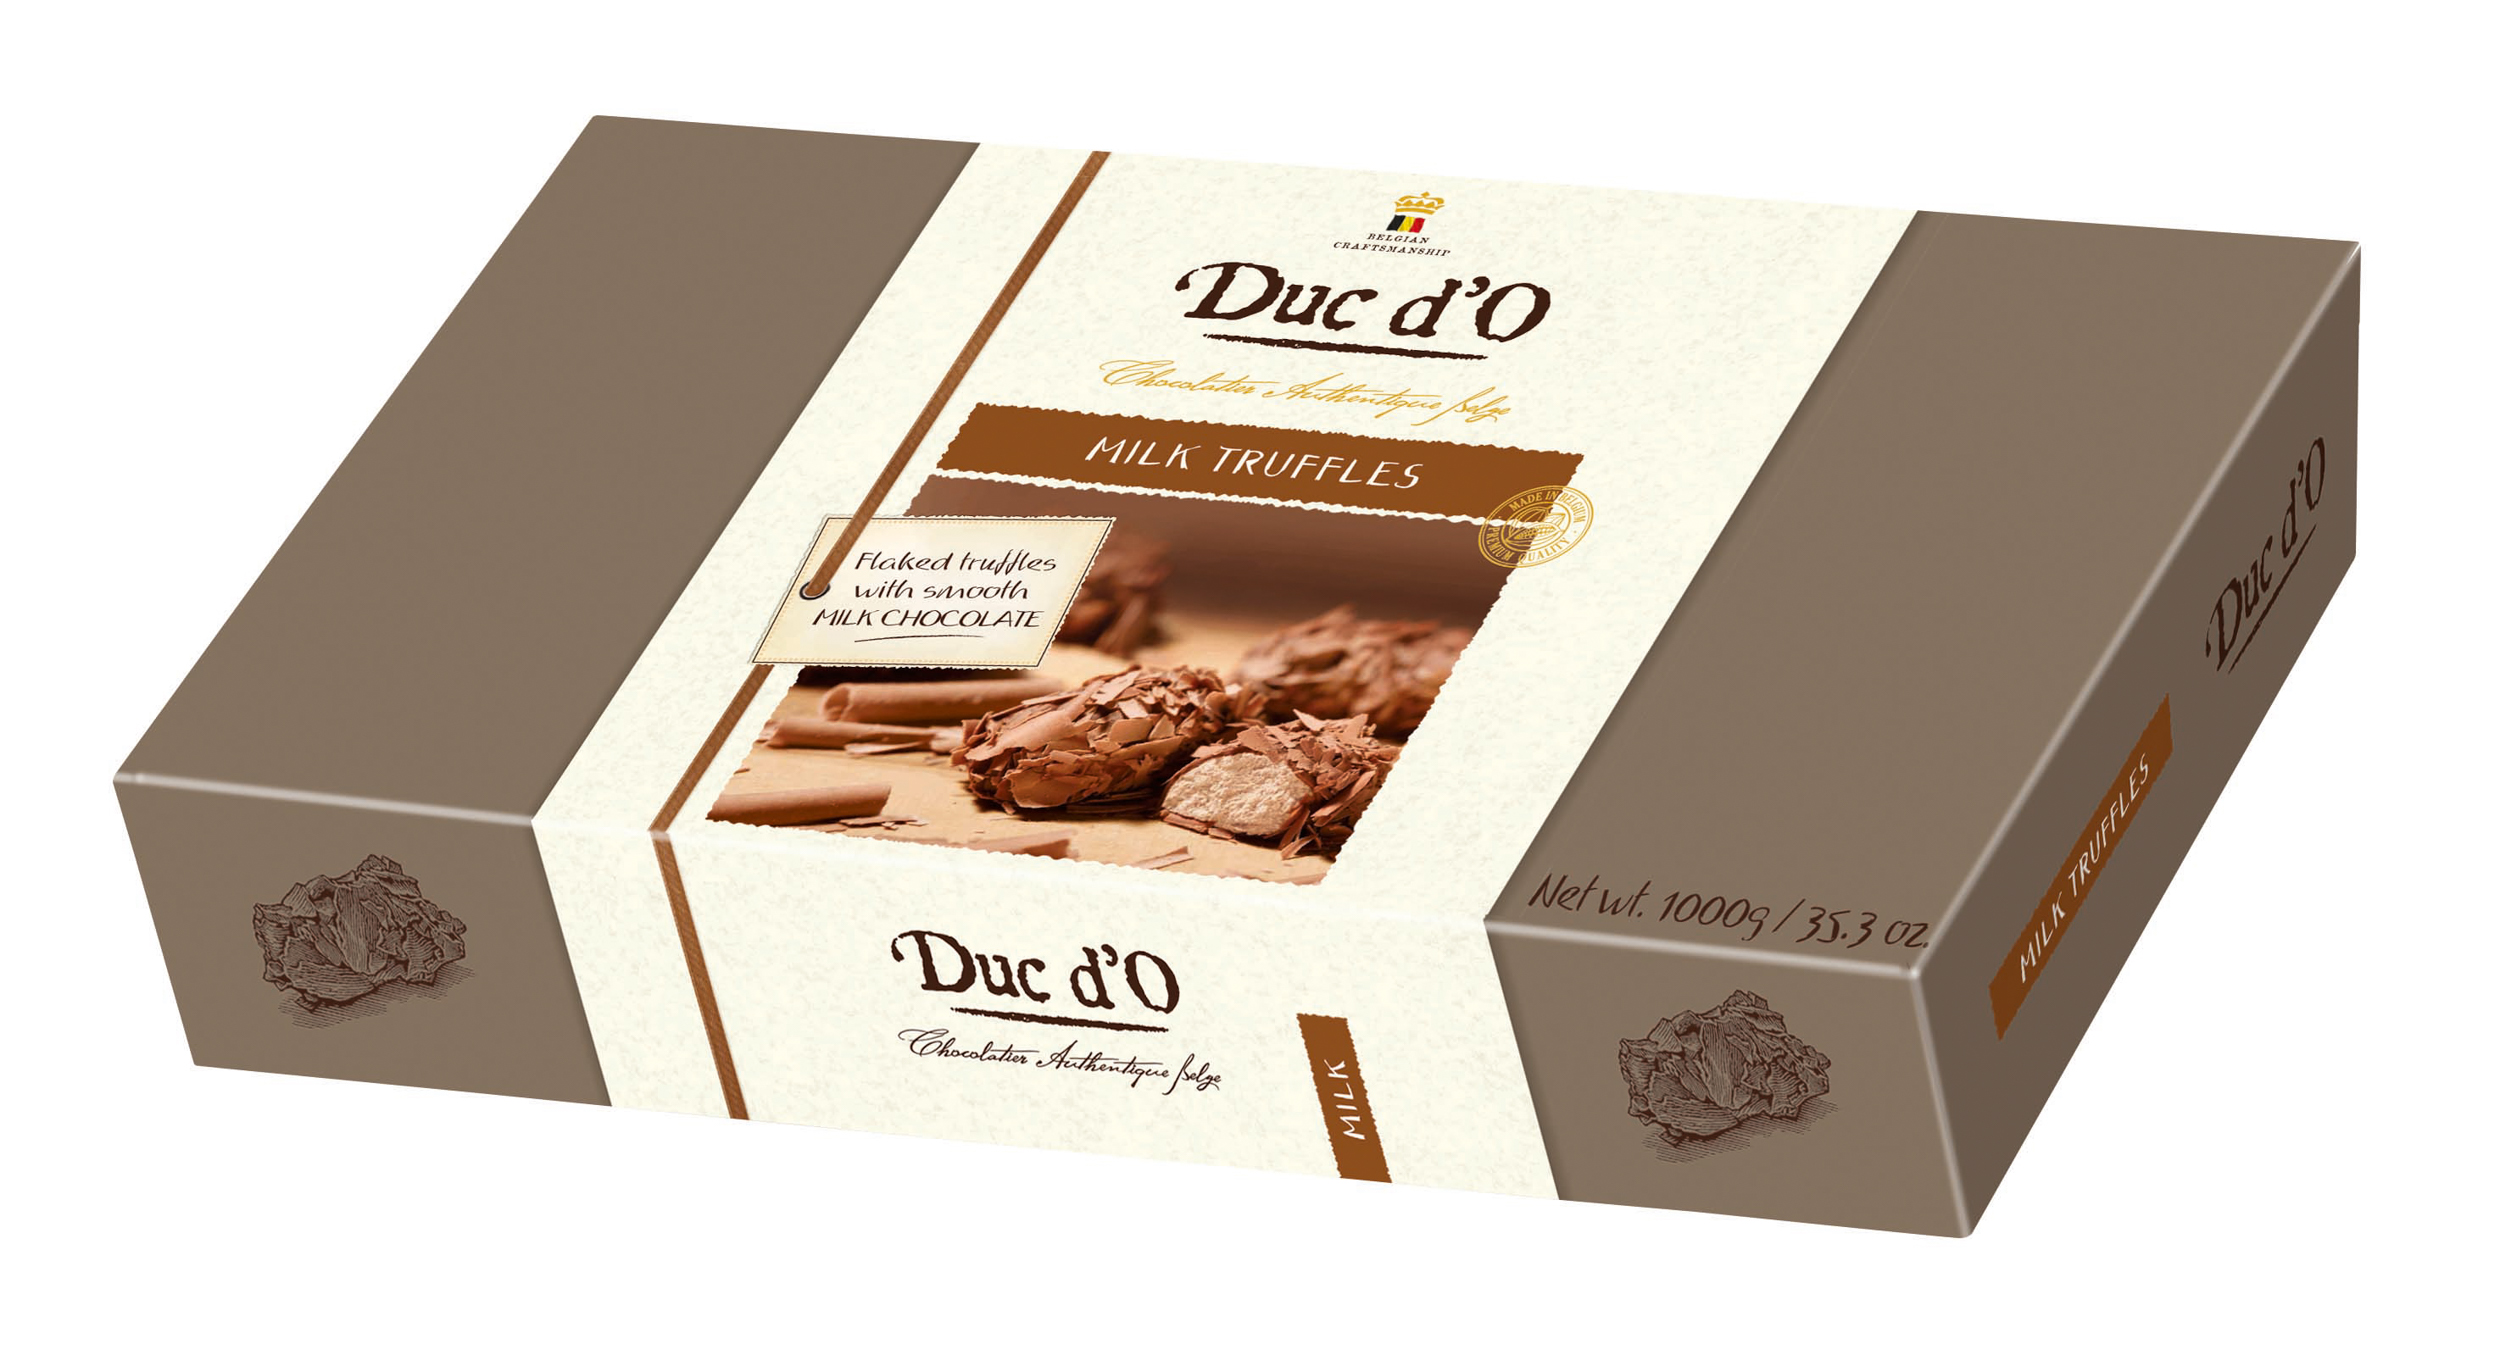 1512778 26100504 Duc Do Flaked Truffles Milk 1kg OT.pdf